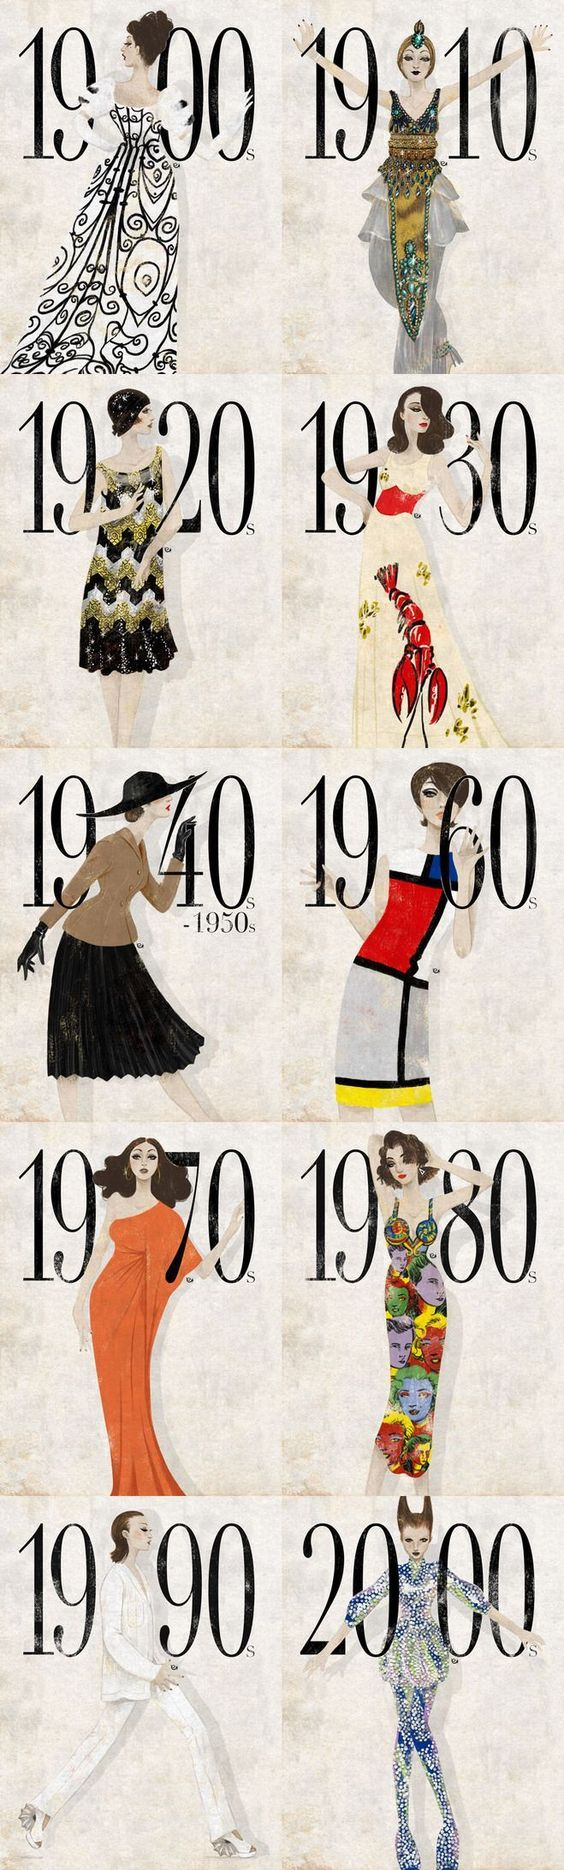 Timeline of fashion photography 87